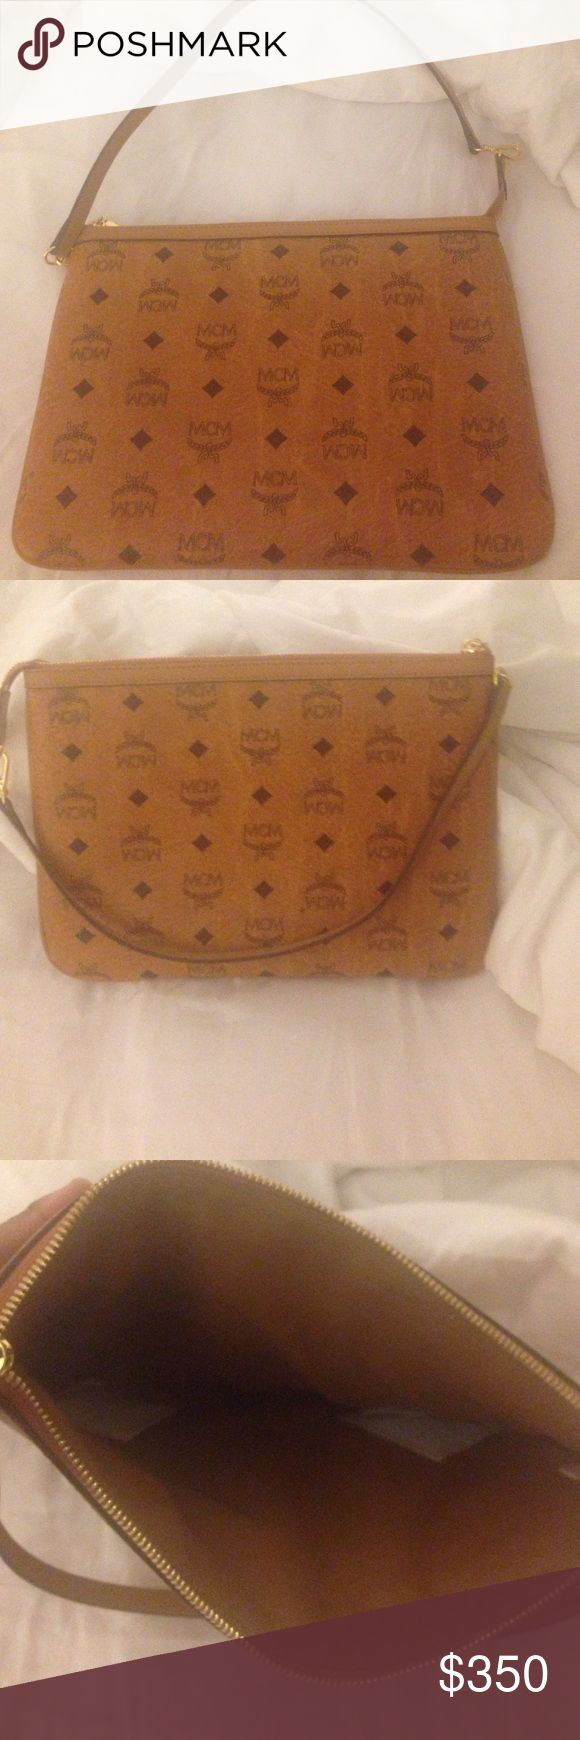 MCM Clutch Brand new MCM clutch comes from a smoke free home MCM Bags Clutches & Wristlets